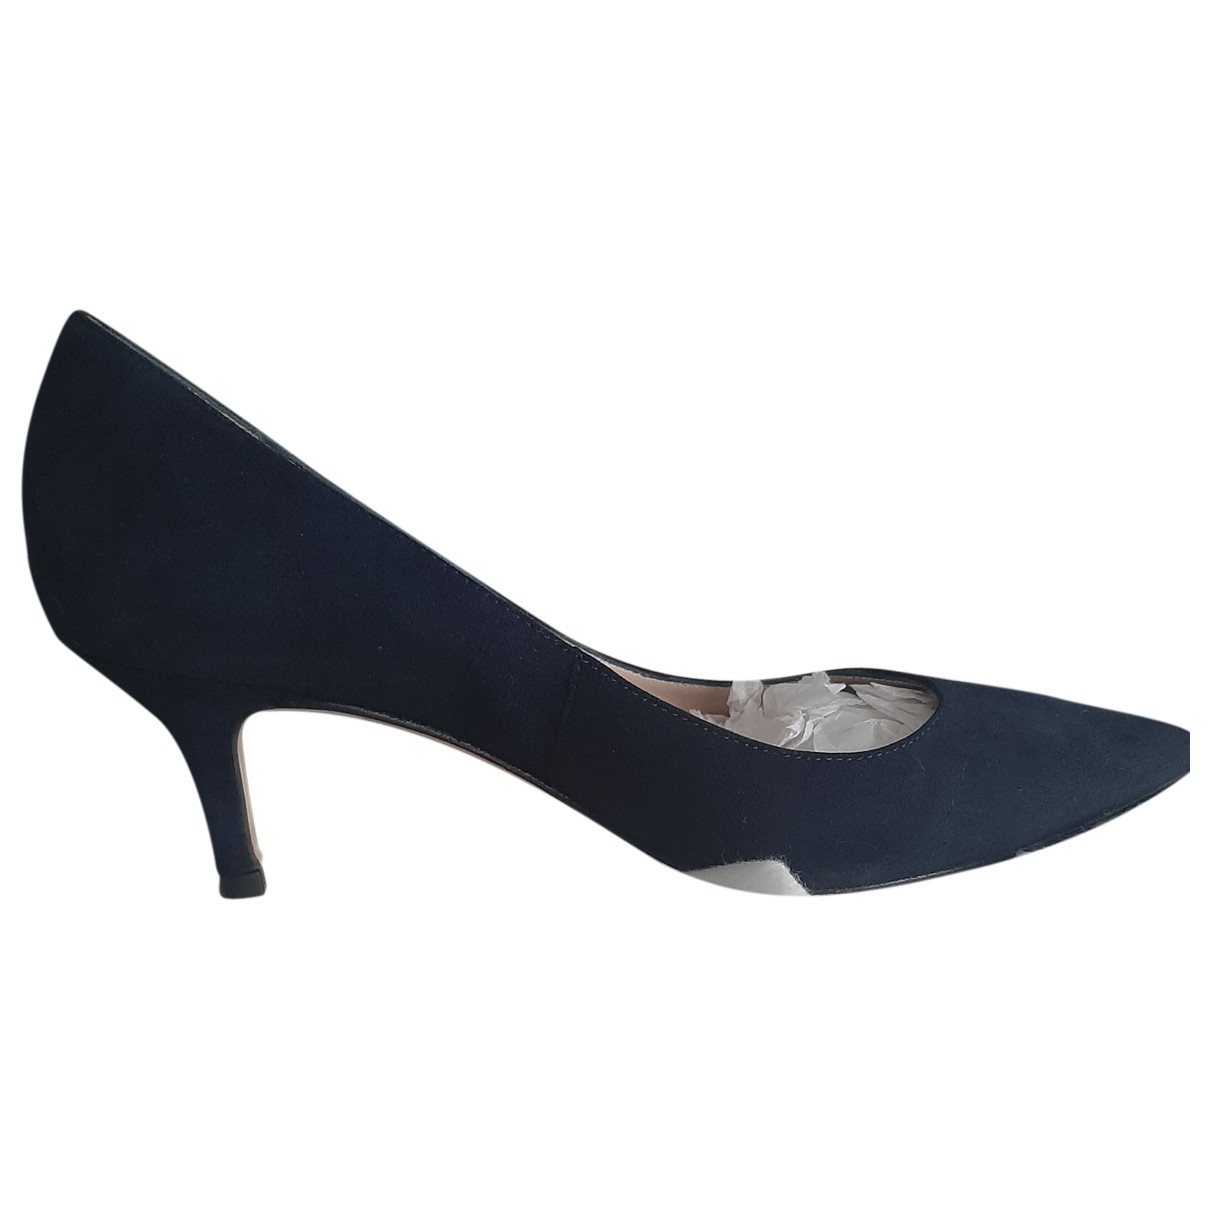 Lk Bennett \N Blue Suede Heels for Women 38 EU